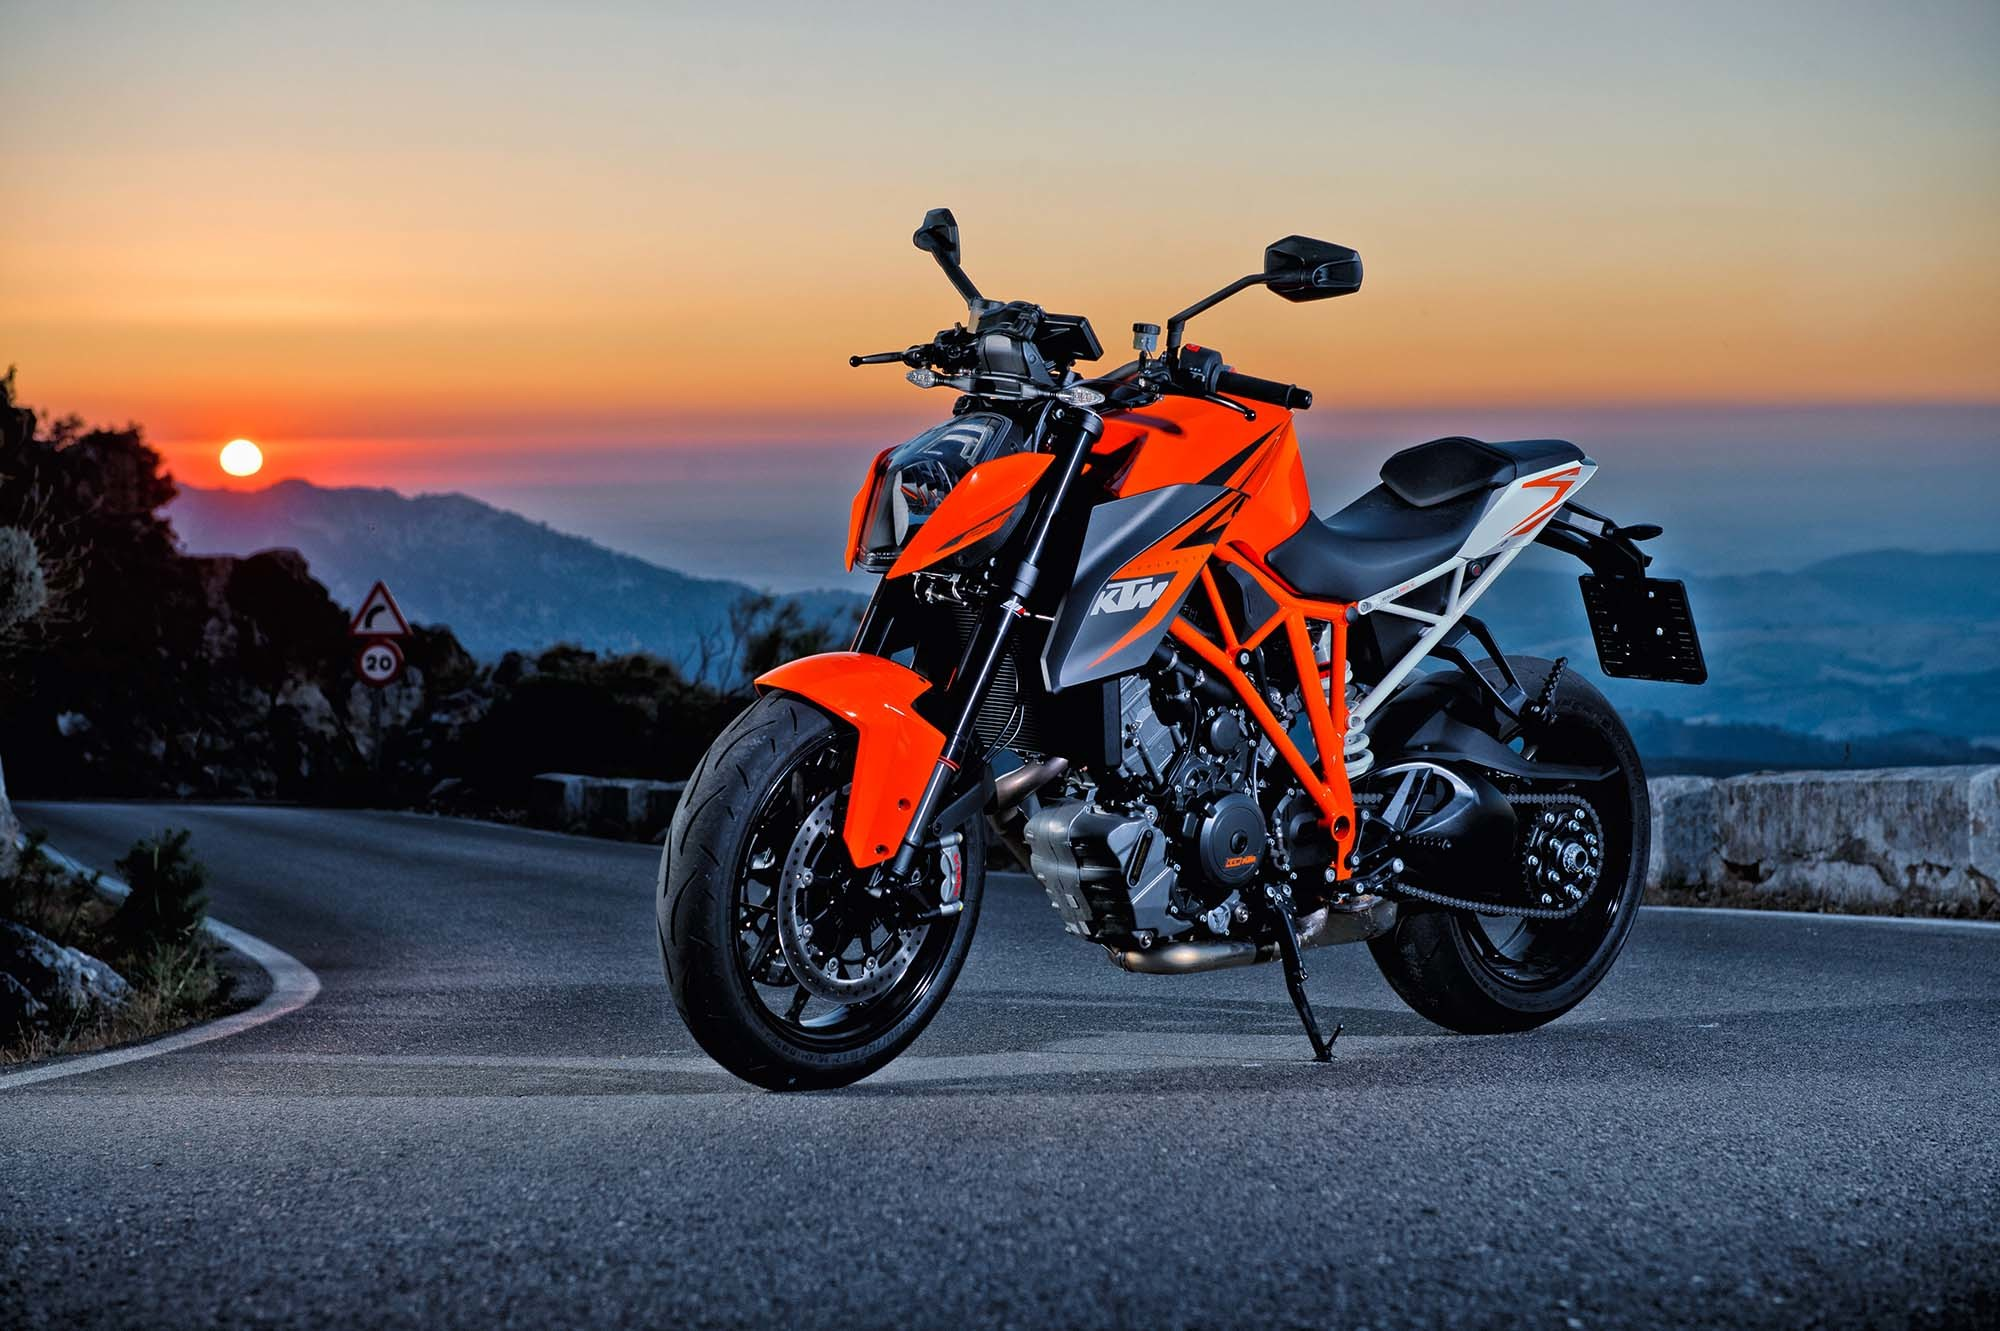 Res: 2000x1331, 2017 Ktm 1290 Super Duke R Background For Iphone Wallpaper HD